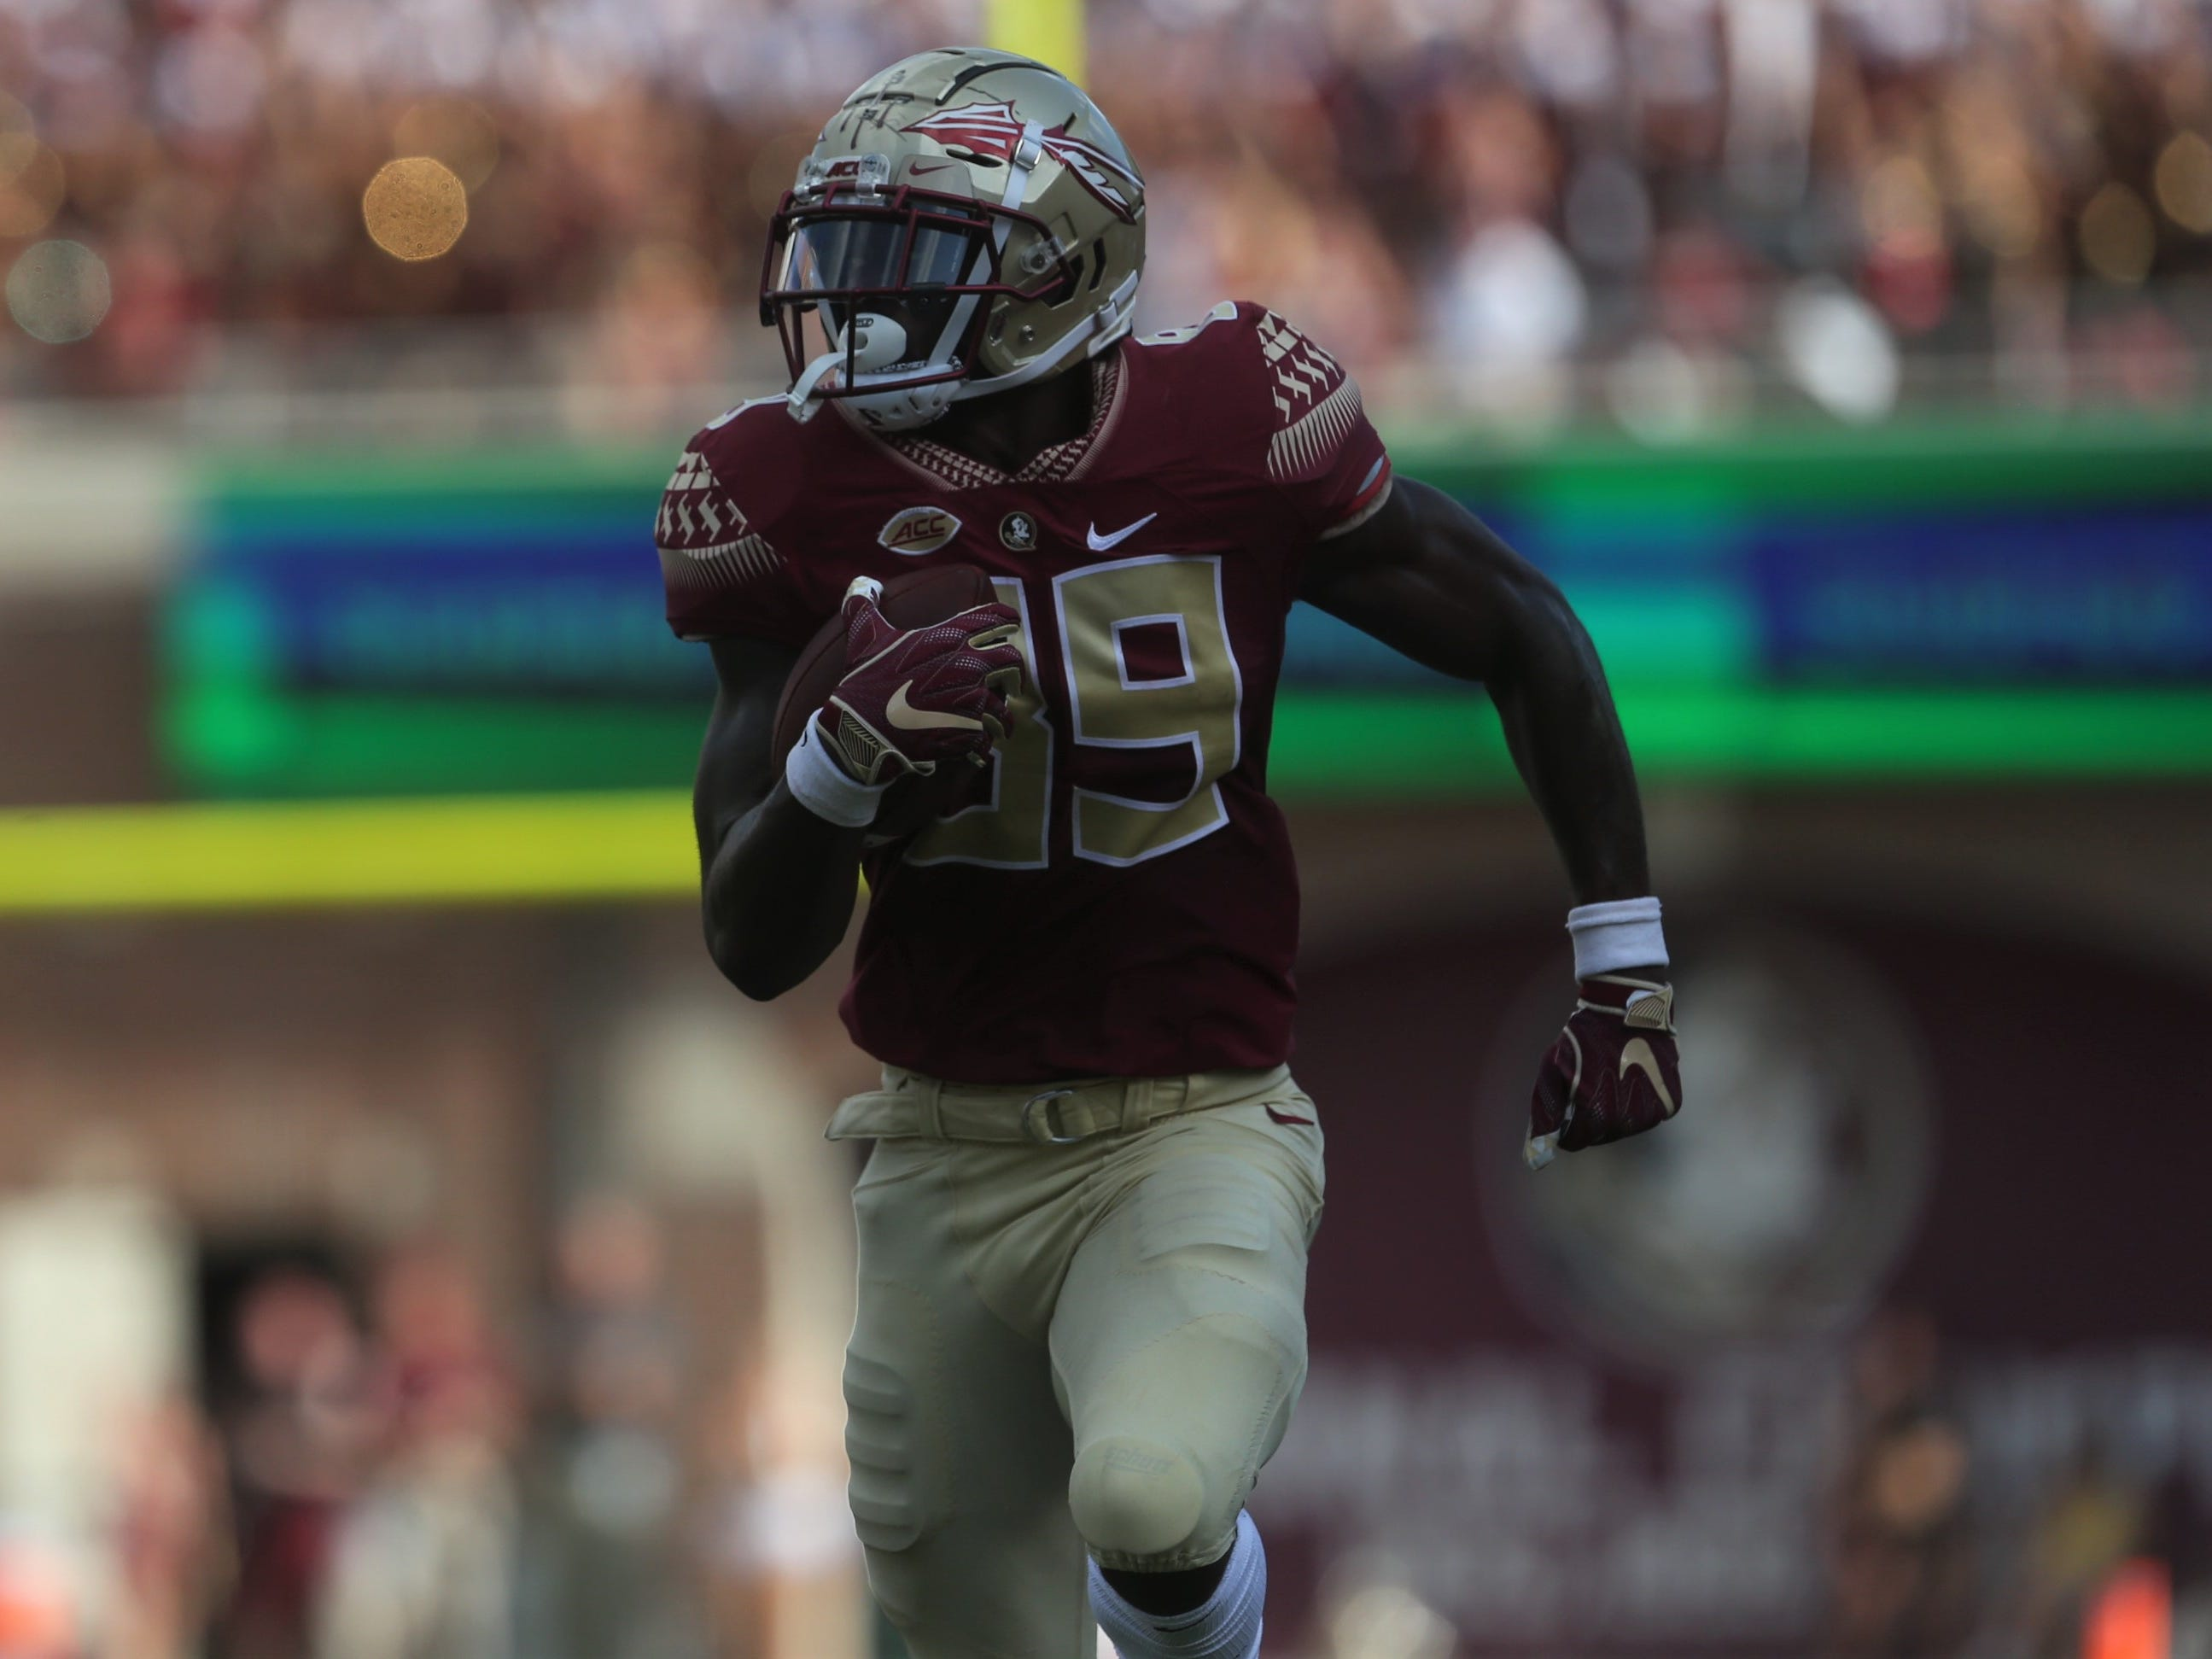 Florida State receiver Keith Gavin races towards the goal line after a catch and run against Wake Forest during a game at Doak Campbell Stadium on Saturday, Oct. 20, 2018.